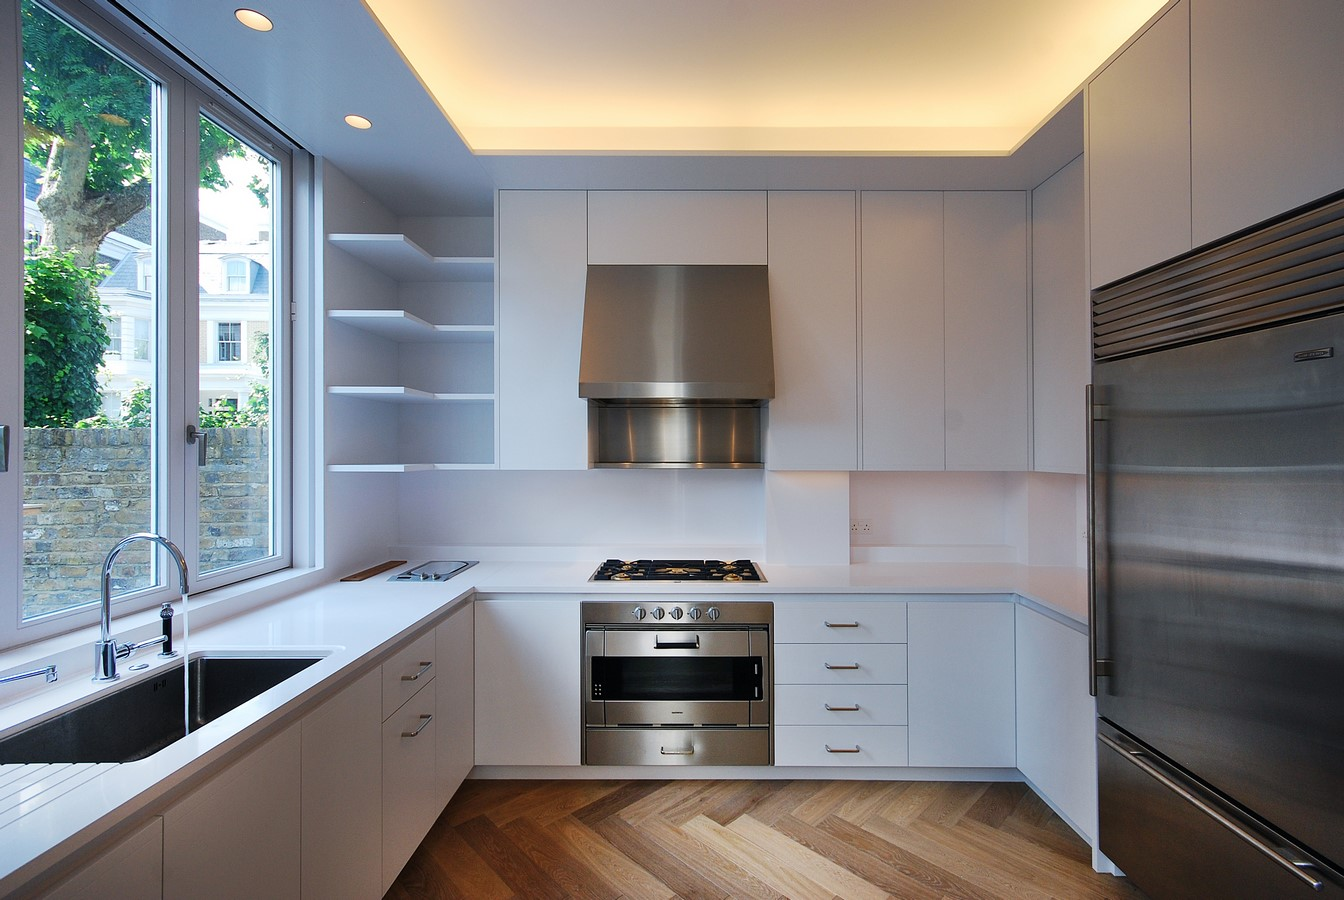 Argyll House by Patalab Architecture - Sheet1